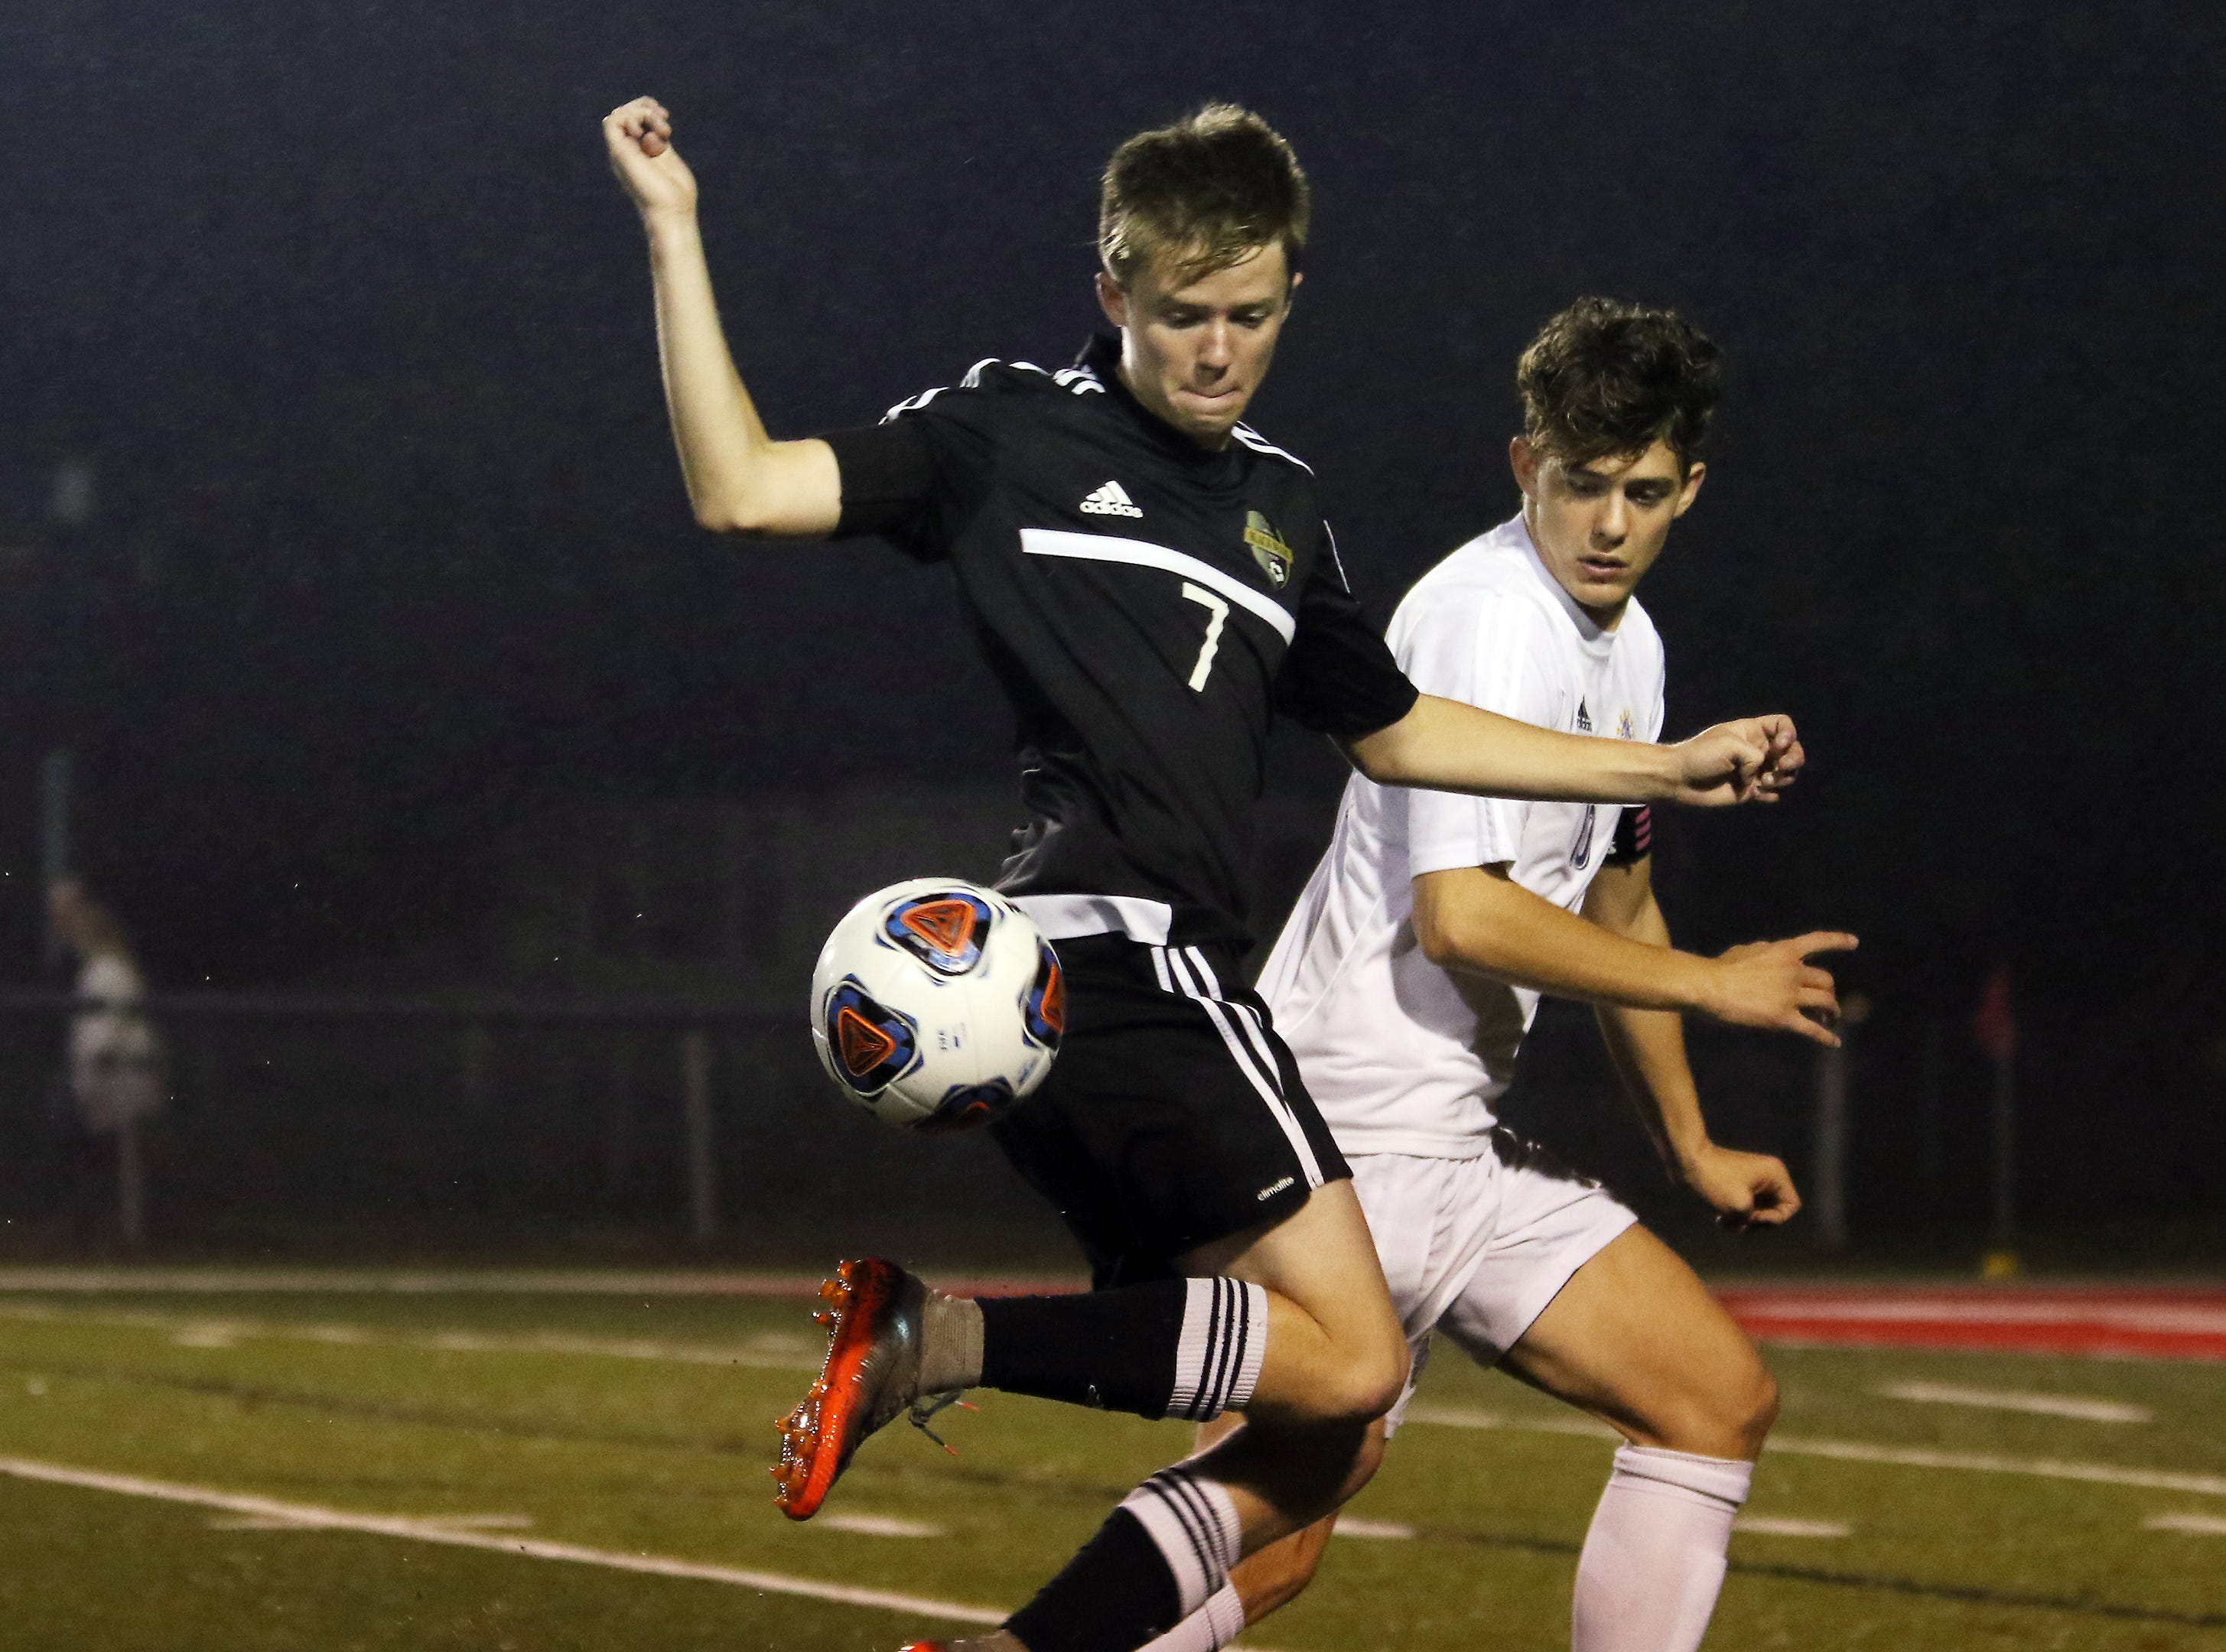 River View's Colt Eaton tries to control the ball against DeSales.